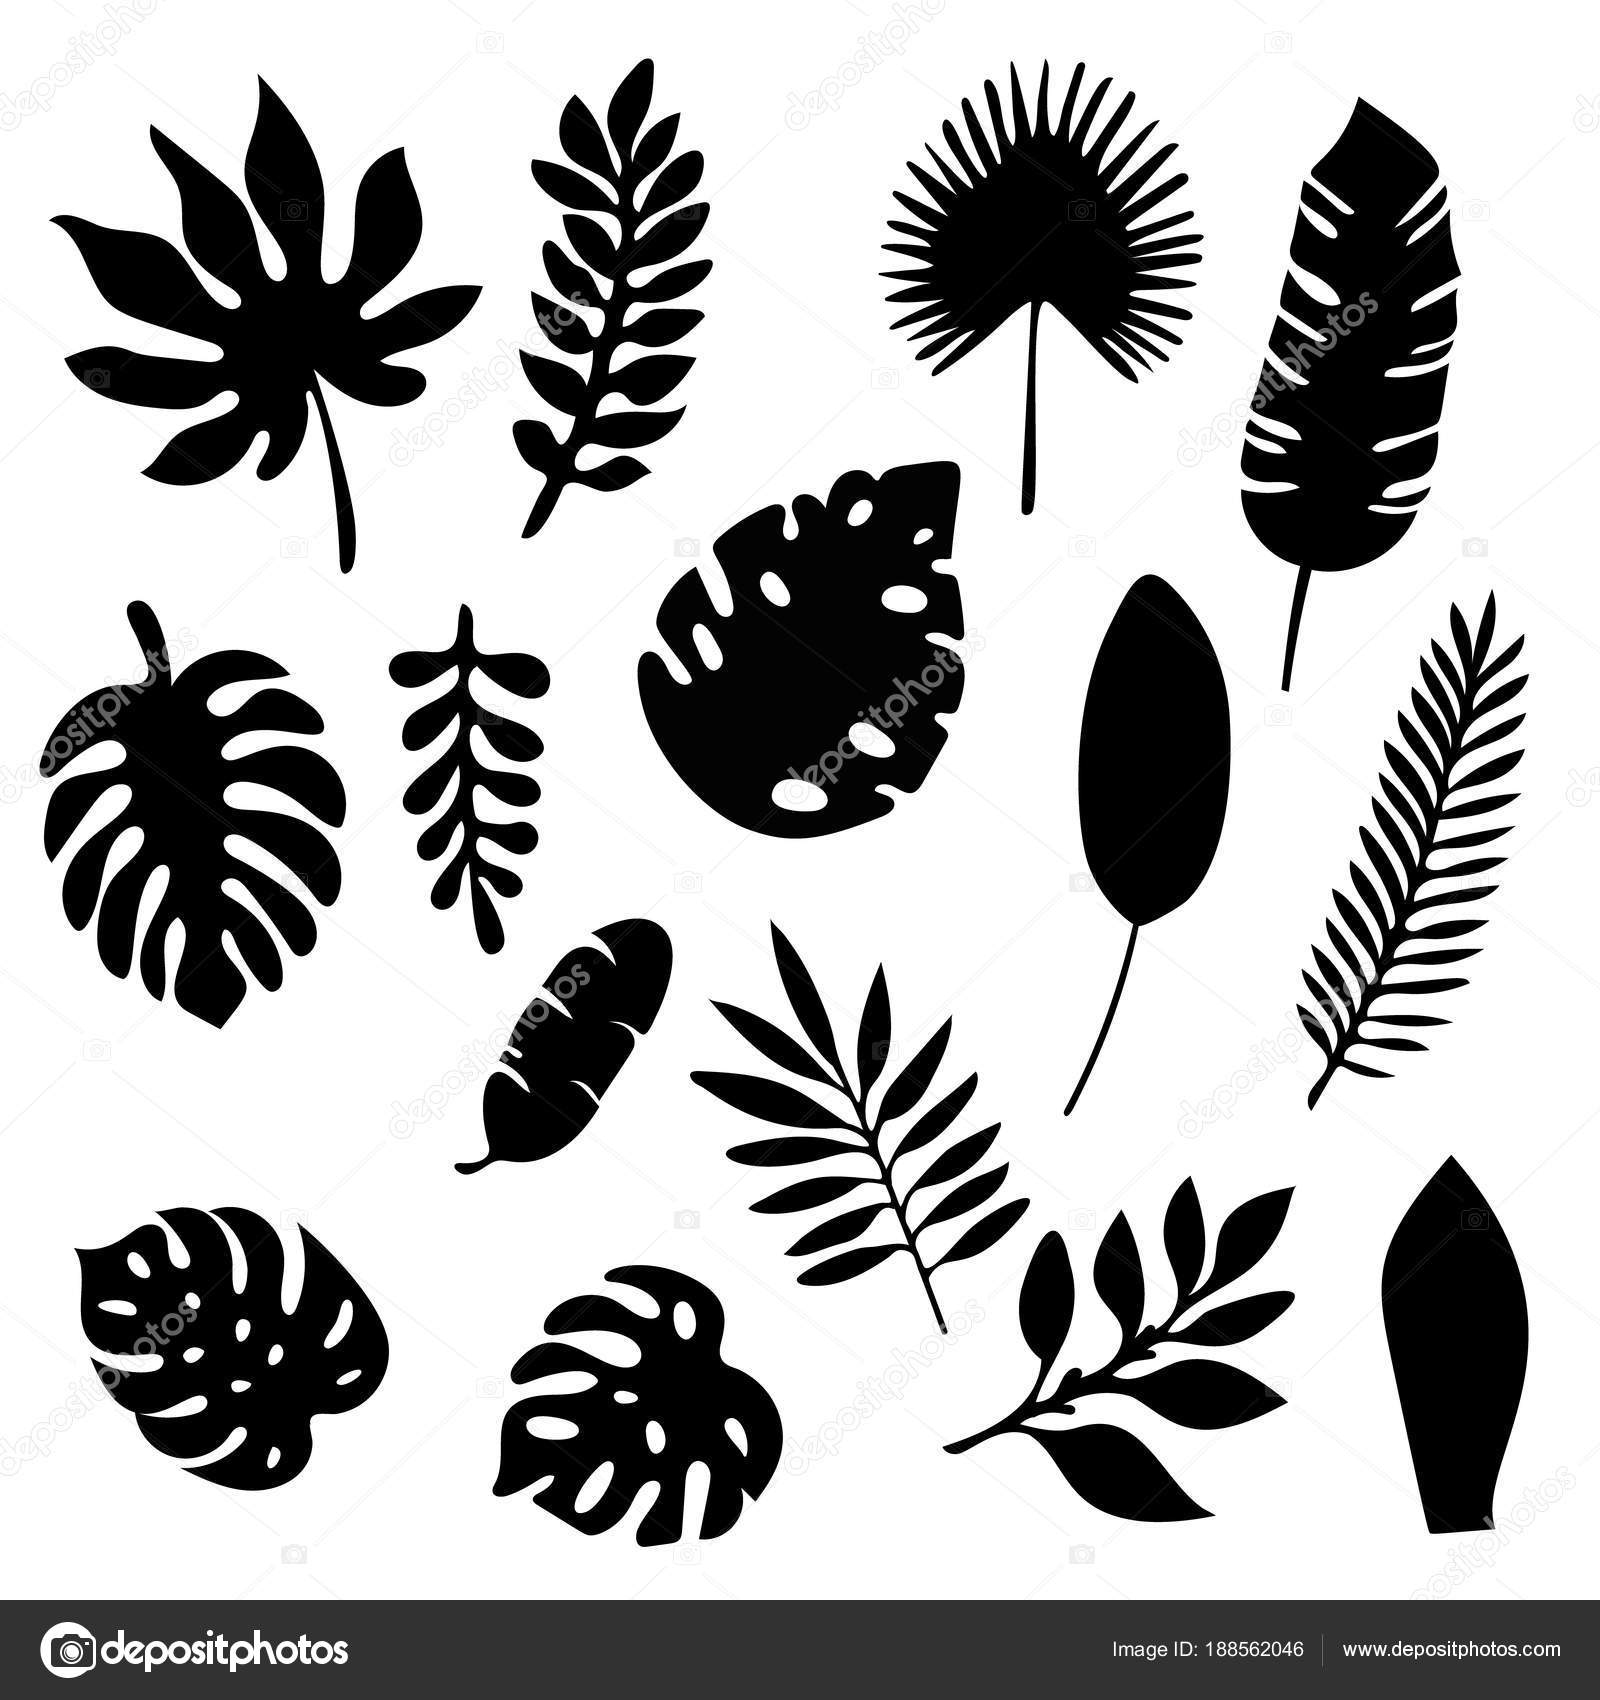 Clipart Palm Leaf Black And White Palm Leaves Silhouettes Set Isolated On White Background Tropical Leaf Silhouette Elements Set Isolated Palm Fan Palm Monstera Banana Leaves Vector Illustration In Black And 30000 flower clipart black and white free download. https depositphotos com 188562046 stock illustration palm leaves silhouettes set isolated html